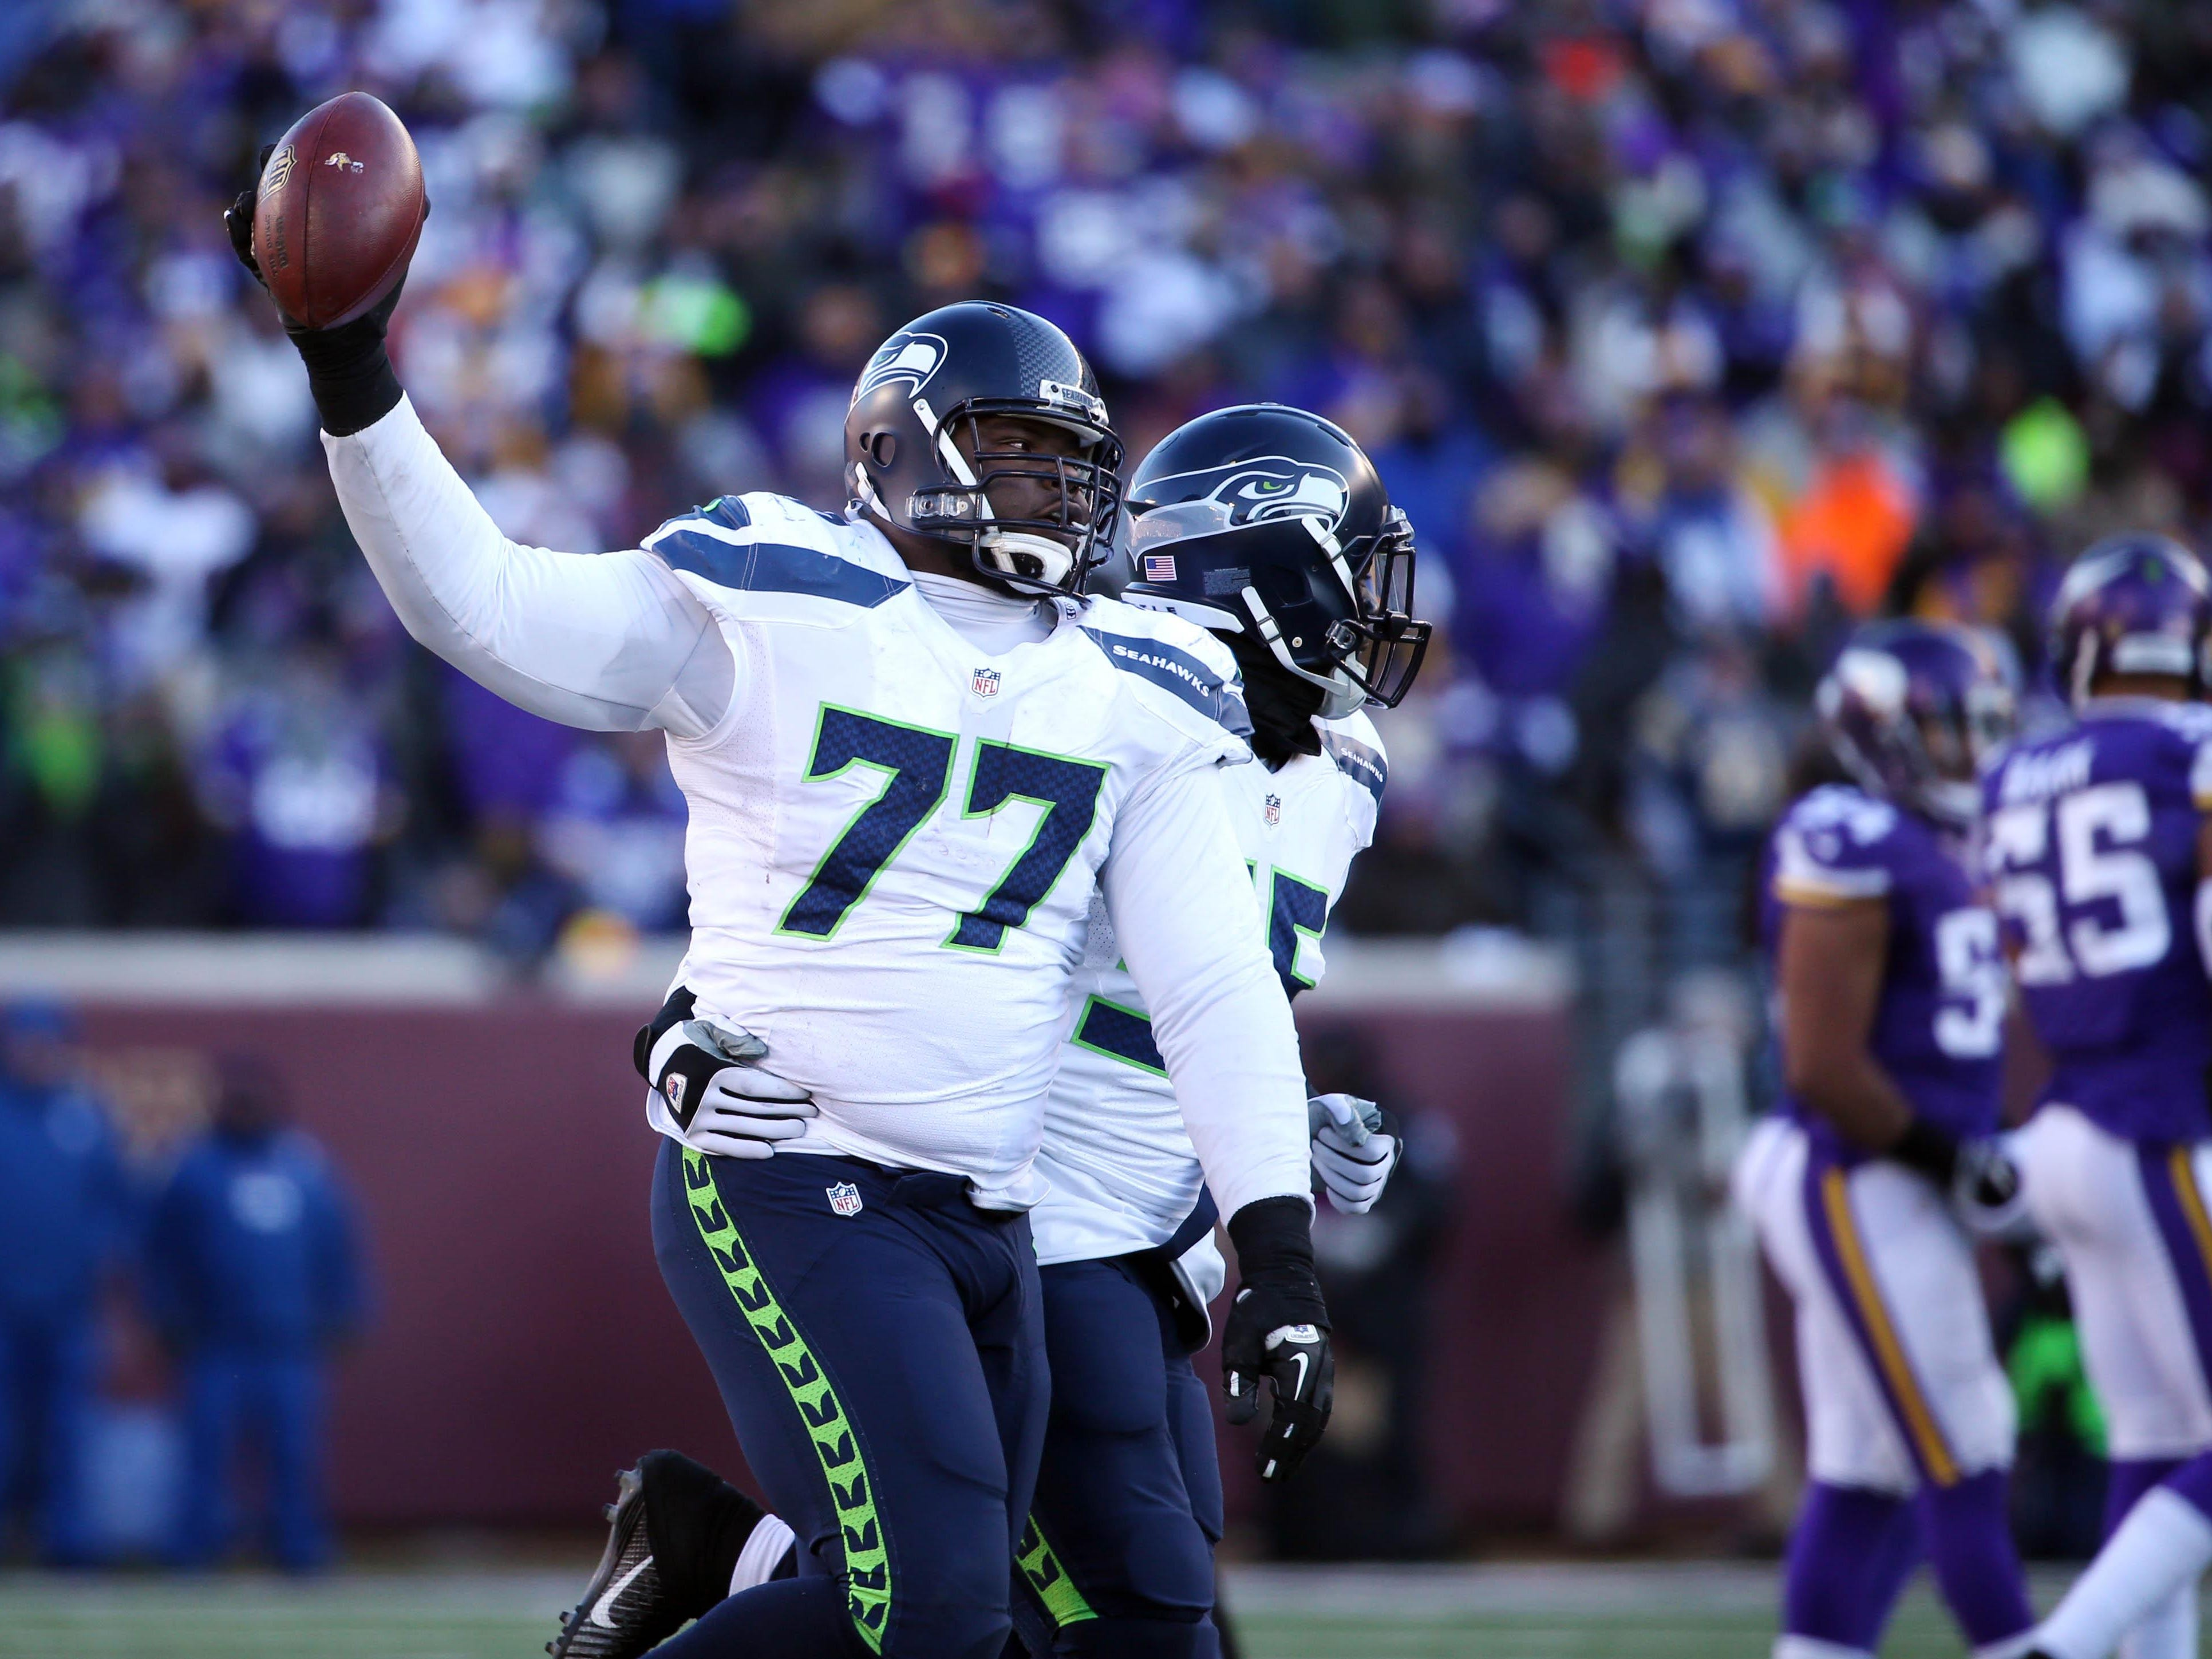 Brace Hemmelgarn/USA TODAY Sports Seahawks defensive tackle Ahtyba Rubin (77) celebrates after recovering a fumble against the Minnesota Vikings. Jan 10, 2016; Minneapolis, MN, USA; Seattle Seahawks defensive tackle Ahtyba Rubin (77) celebrates after a recovered fumble against the Minnesota Vikings in the fourth quarter of a NFC Wild Card playoff football game at TCF Bank Stadium. Mandatory Credit: Brace Hemmelgarn-USA TODAY Sports